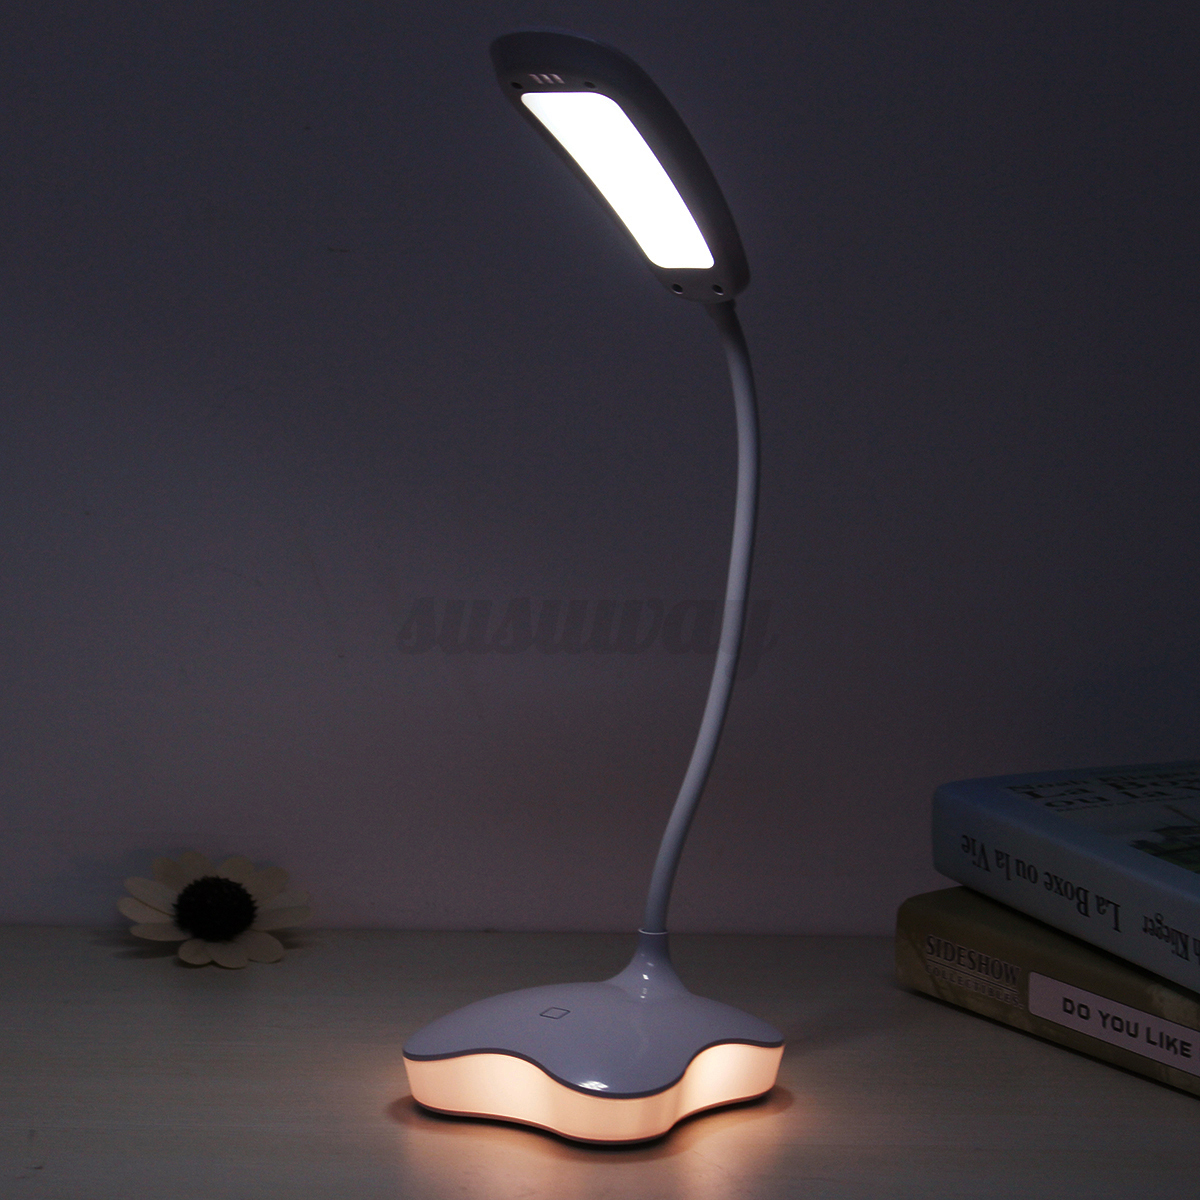 Portatil-USB-LED-regulable-INTERRUPTOR-DE-CONTACTO-LUZ-LED-Lampara-Escritorio